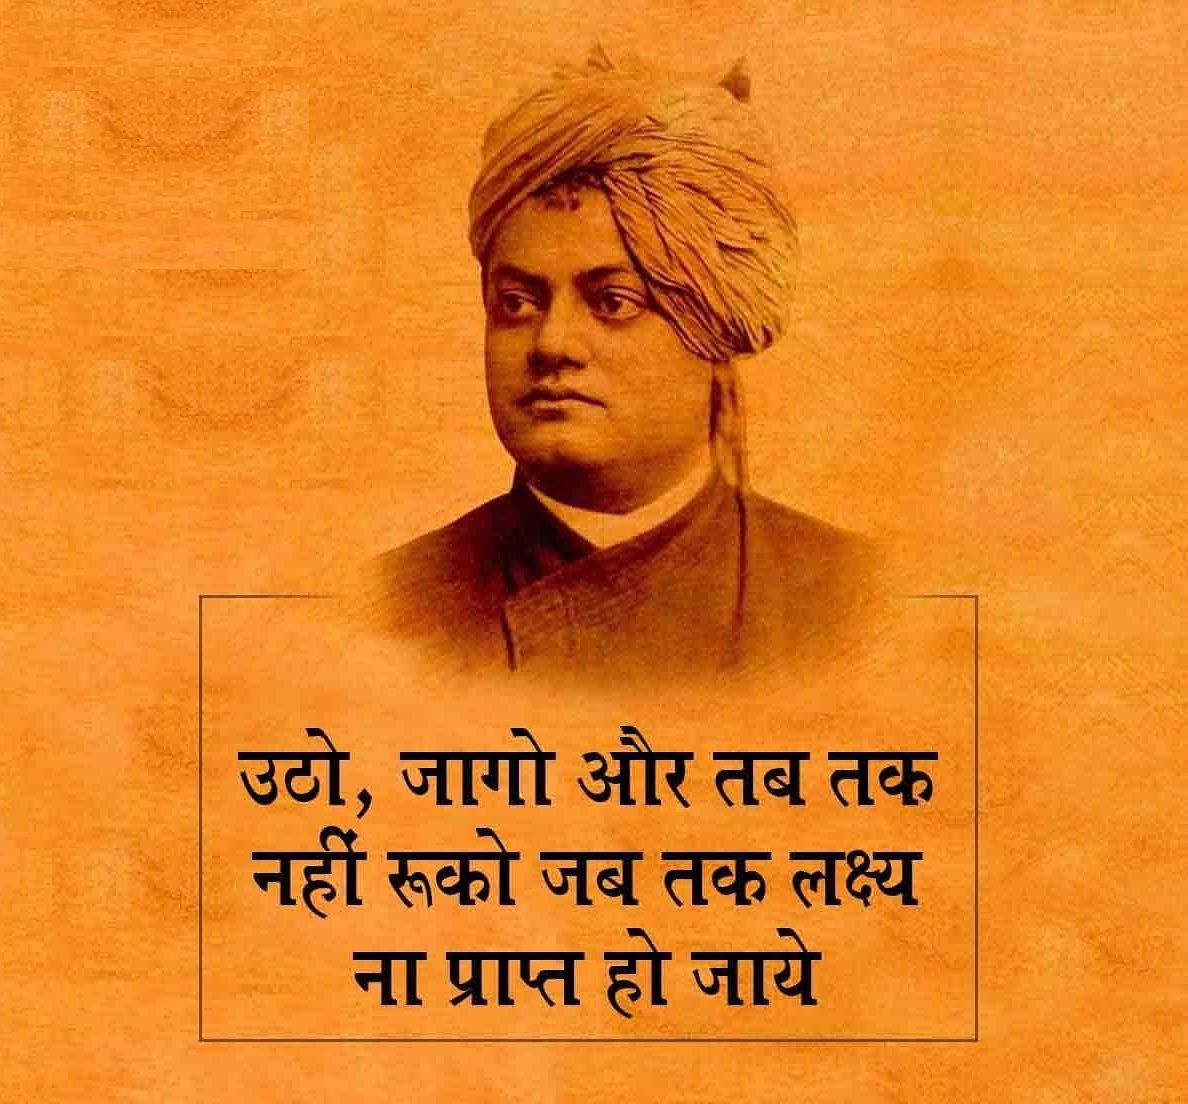 swami-vivekanand-suvichar-photo